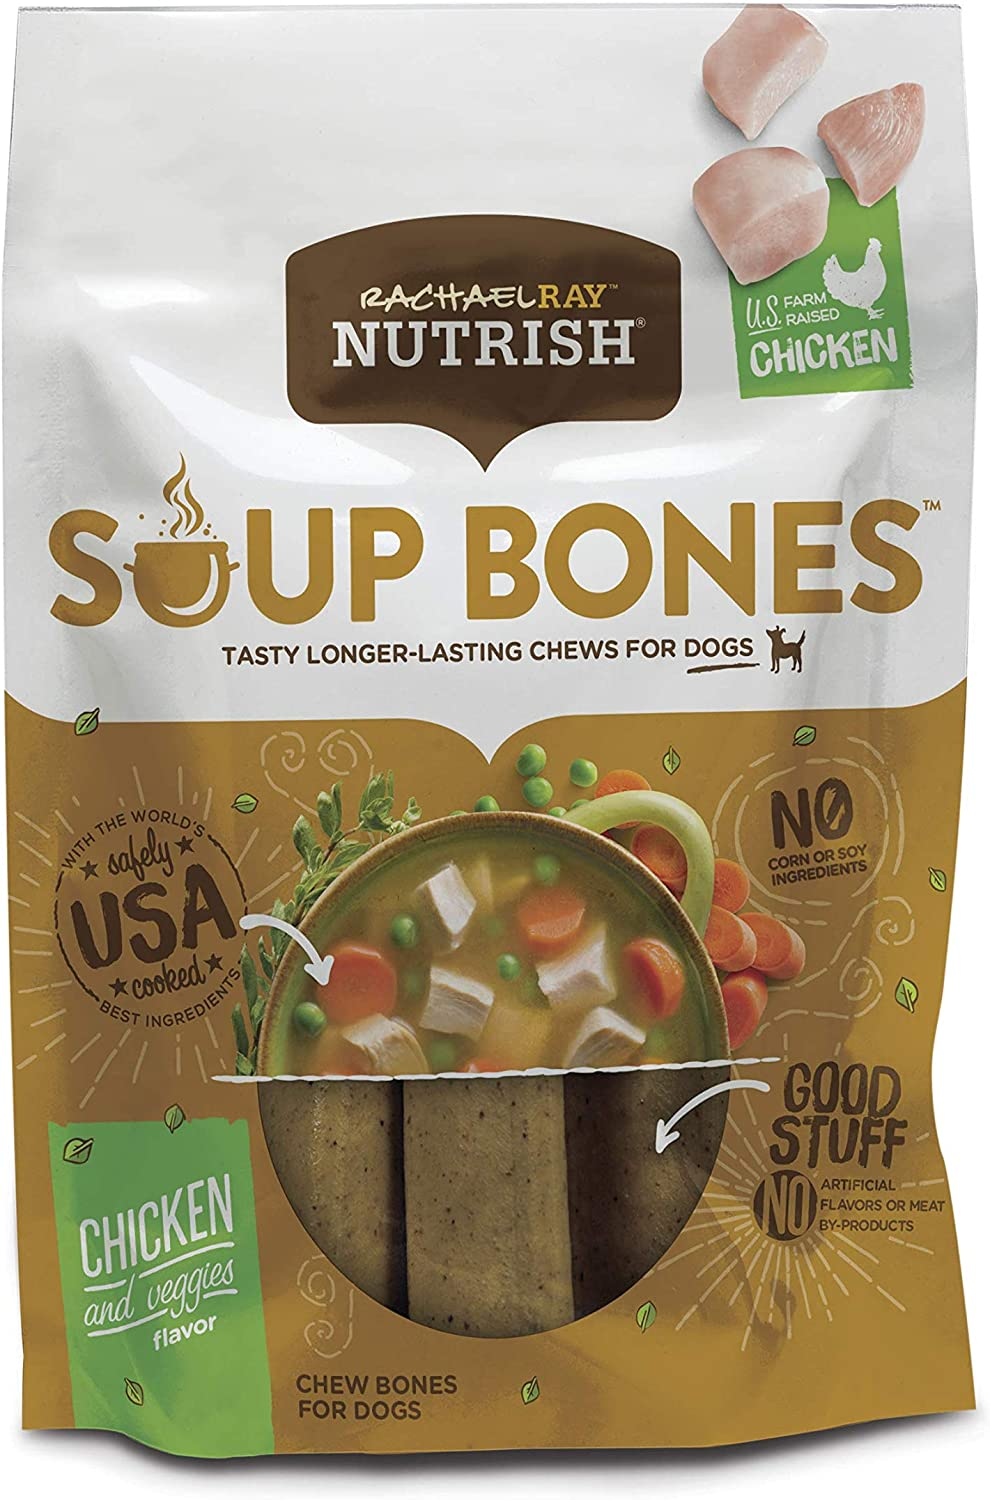 Rachael Ray Nutrish Soup Bones Longer Lasting Dog Treat Chews